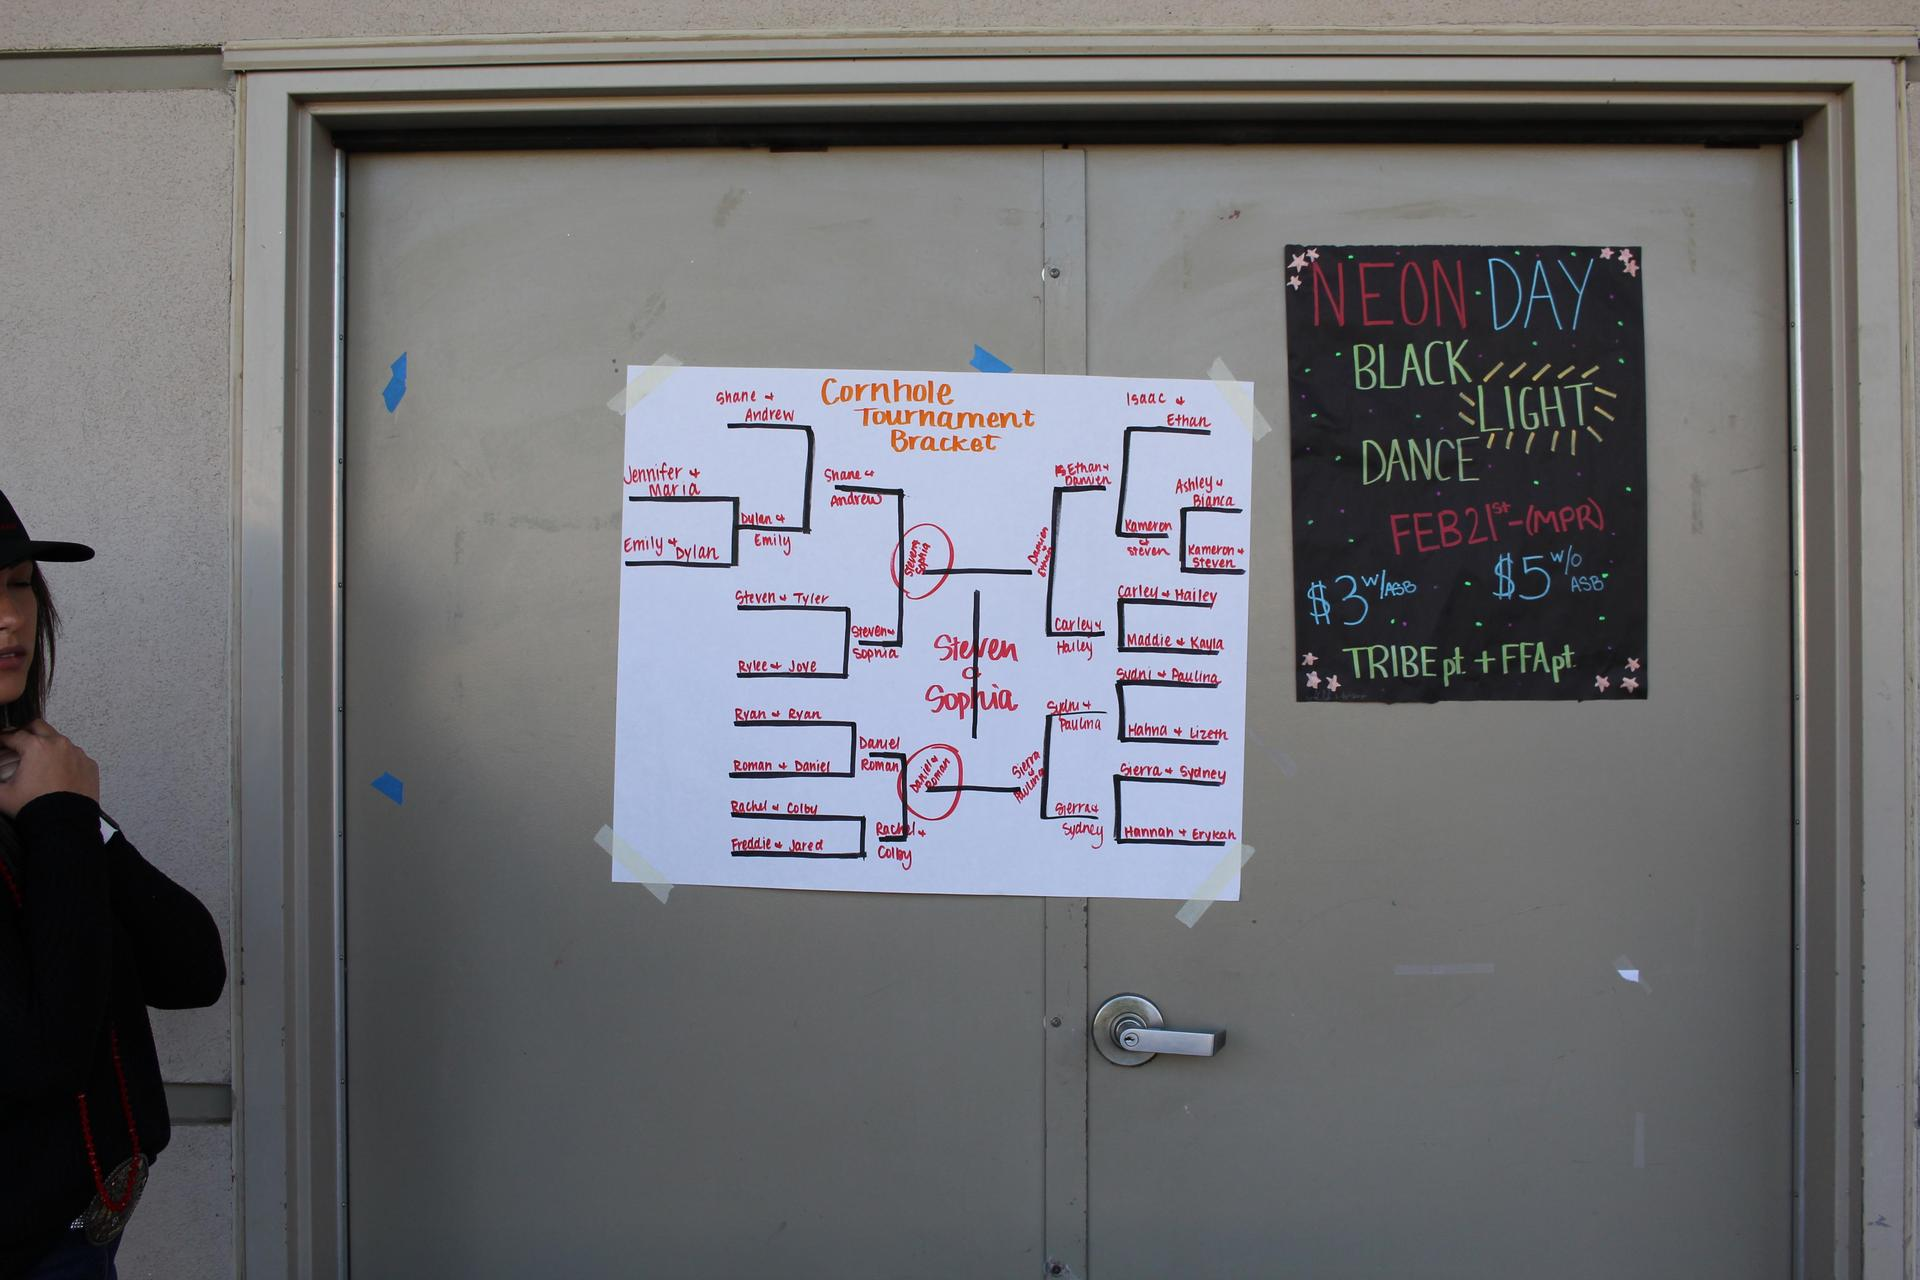 Bracket showing Steven Busby and Sophia Jackson have won